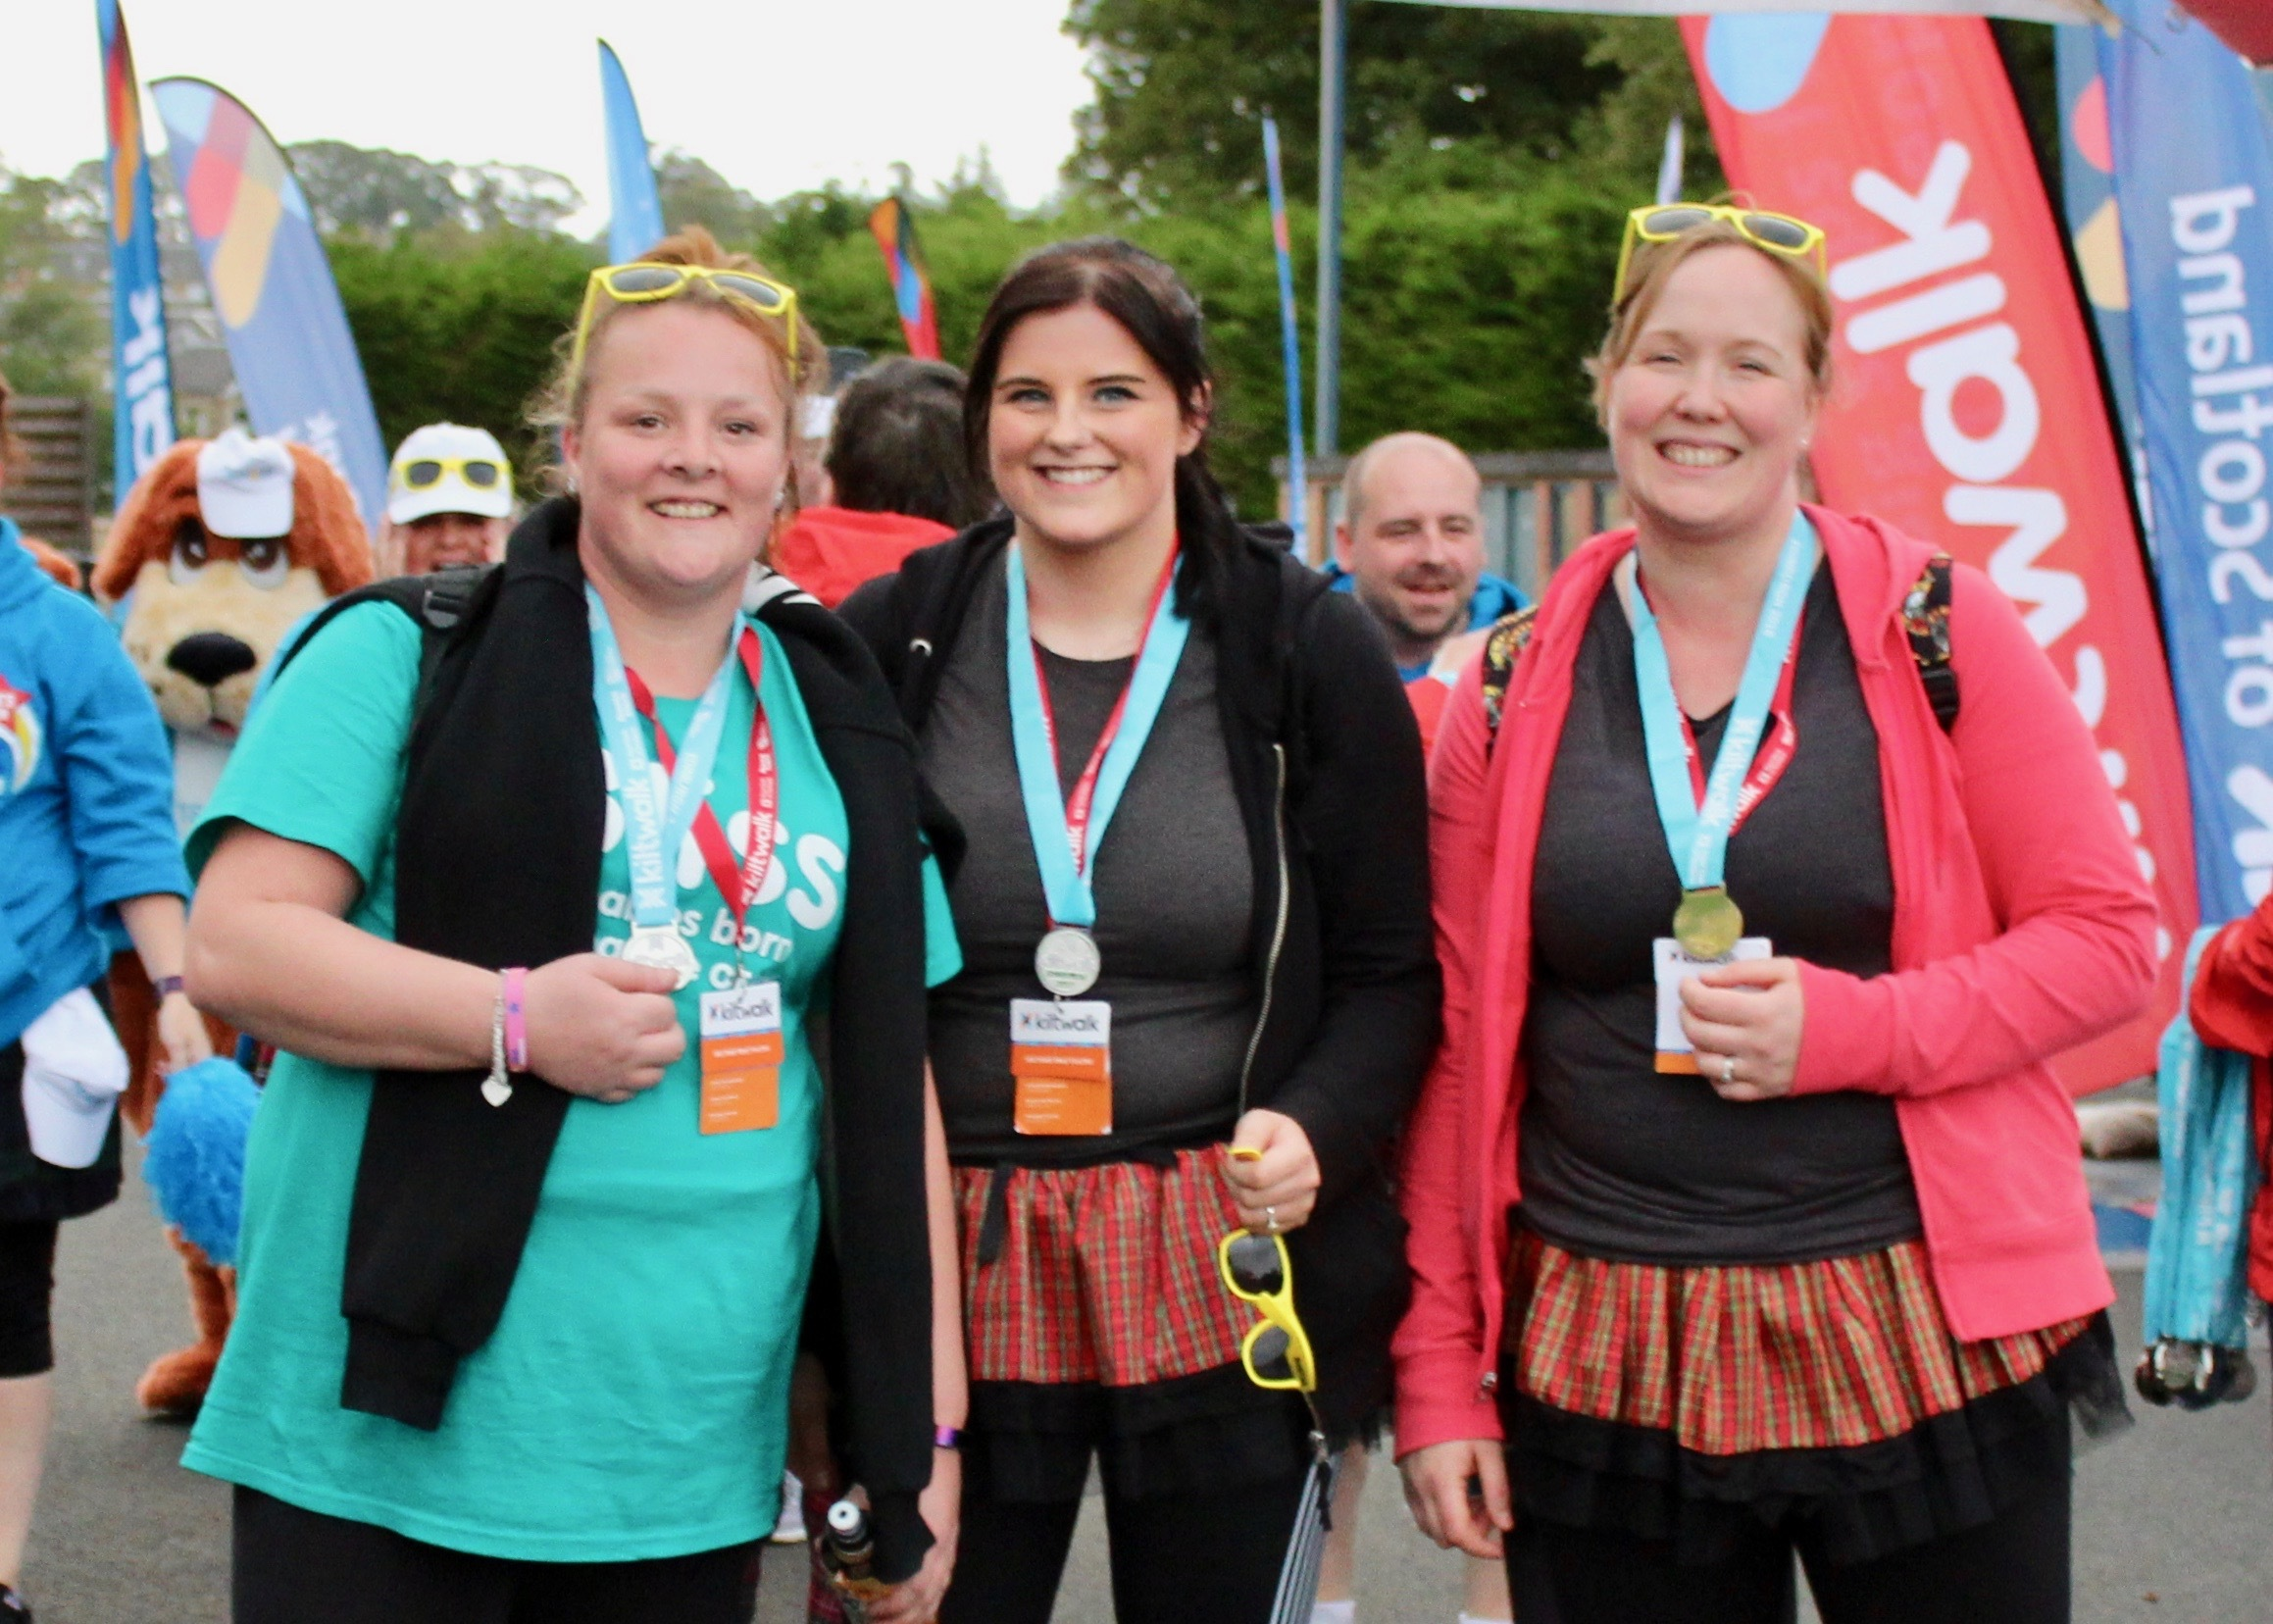 3 women with their kiltwalk medals at the finish line